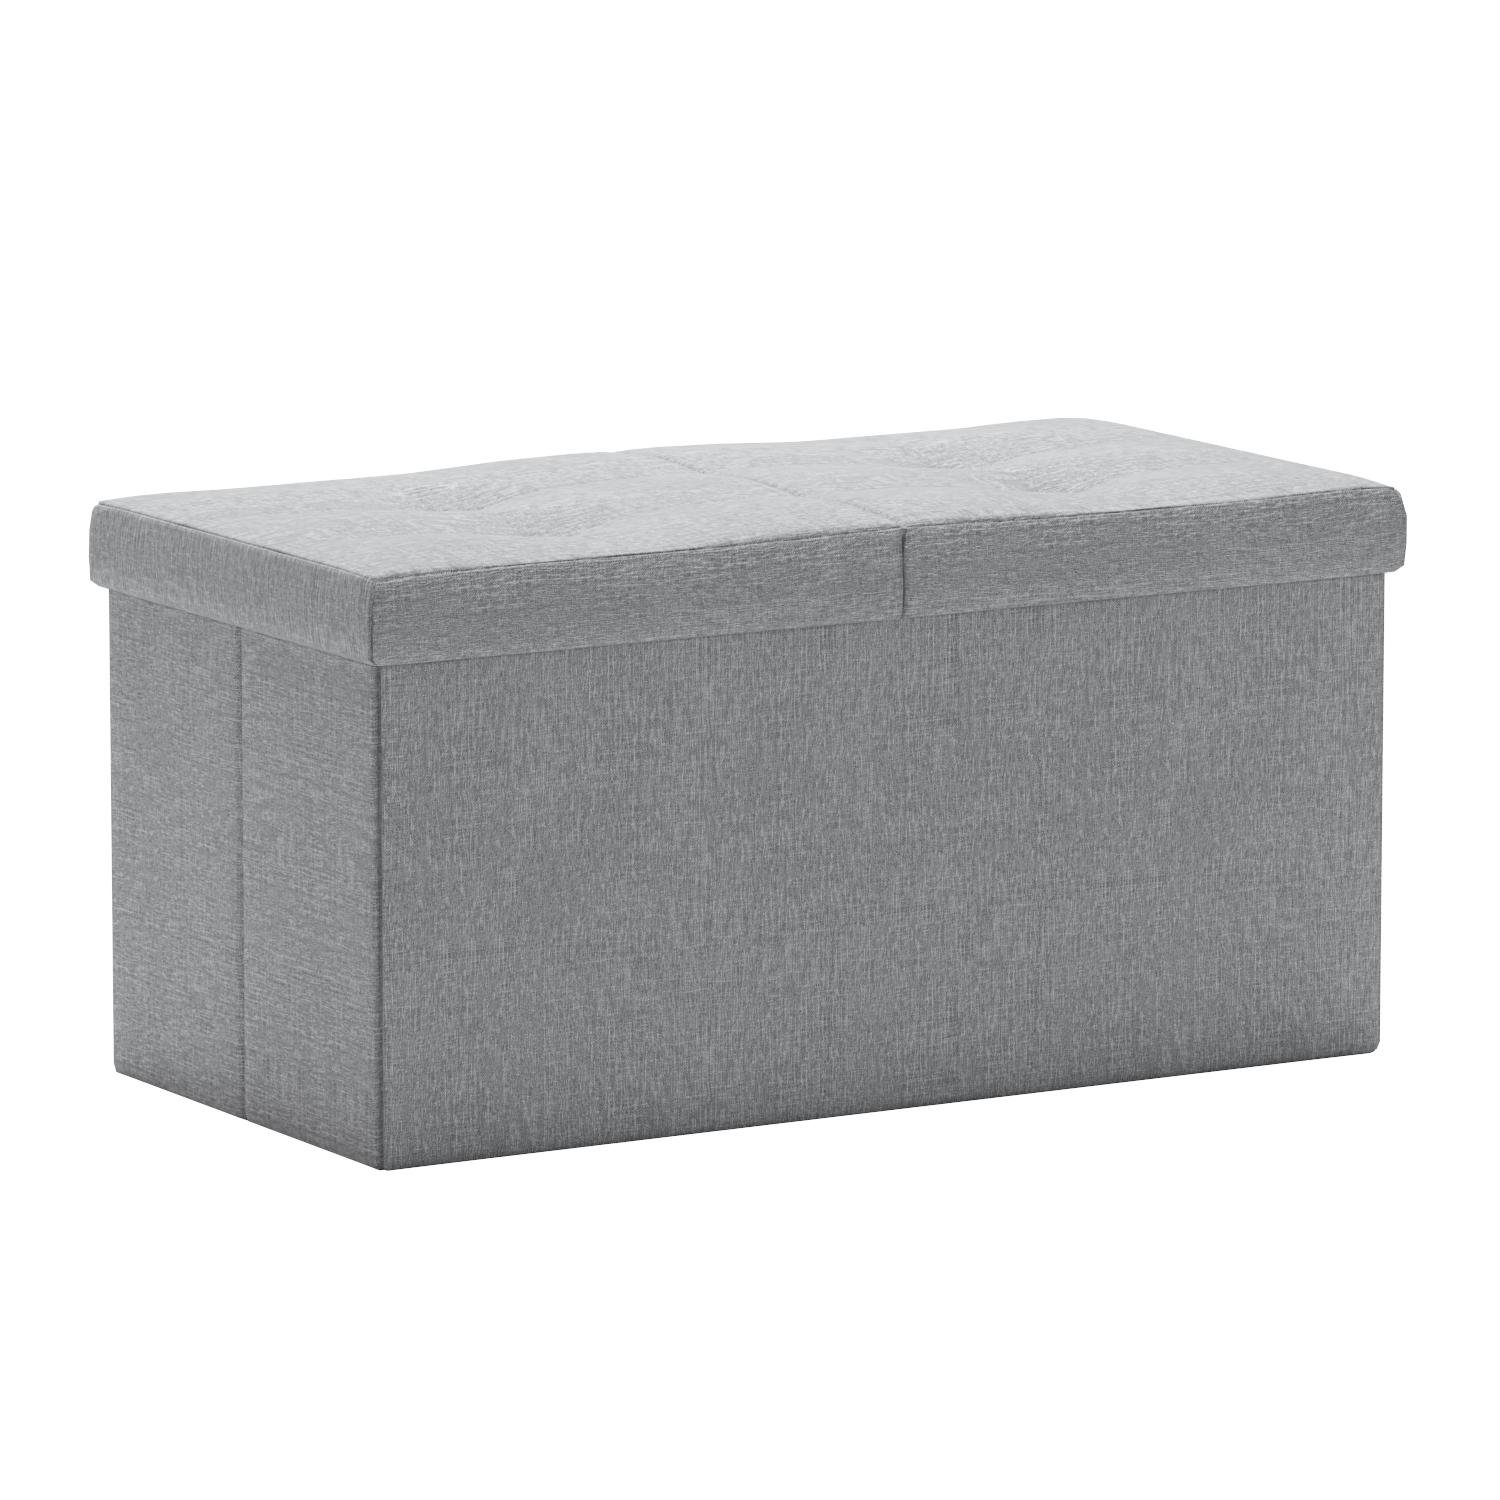 Otto & Ben 30'' Storage Ottoman - Folding Toy Box Chest with Smart Lift Top, Linen Fabric Ottomans Bench Foot Rest for Bedroom, Light Grey